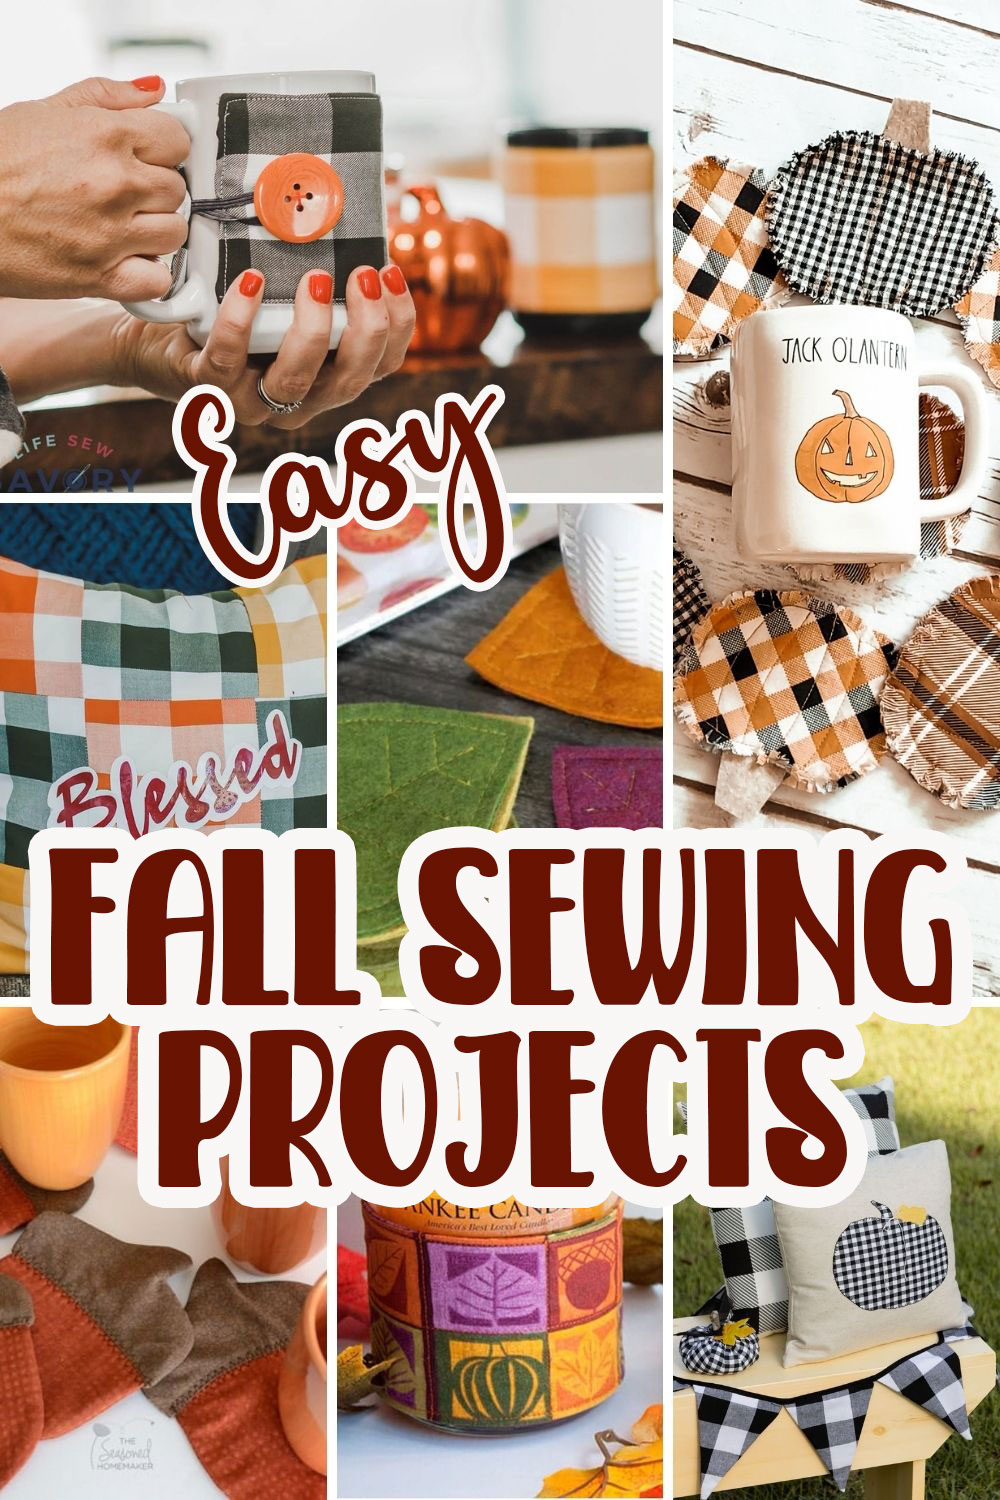 15 beautiful fall sewing projects for beginners you have to try. Each one of these easy fall sewing projects is a piece of beautiful home decor. Sewing for fall has never been so fun.